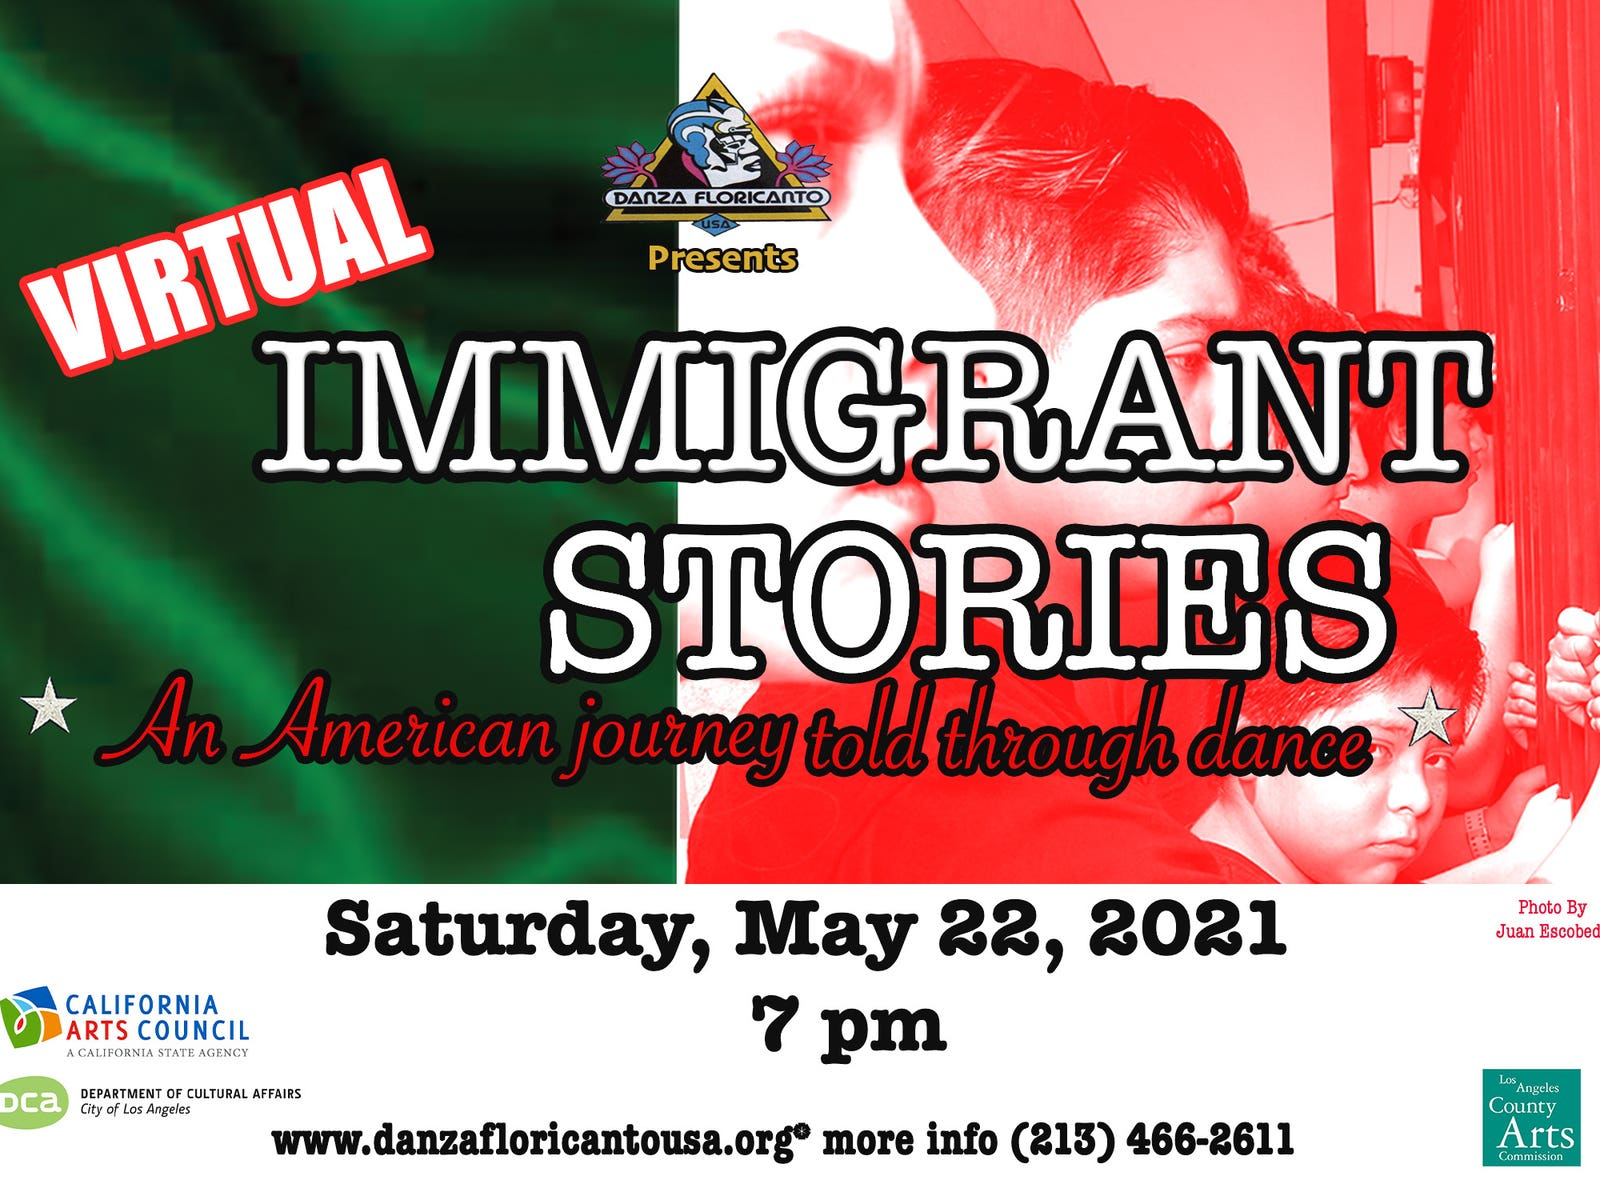 Floricanto's Immigrant Storie